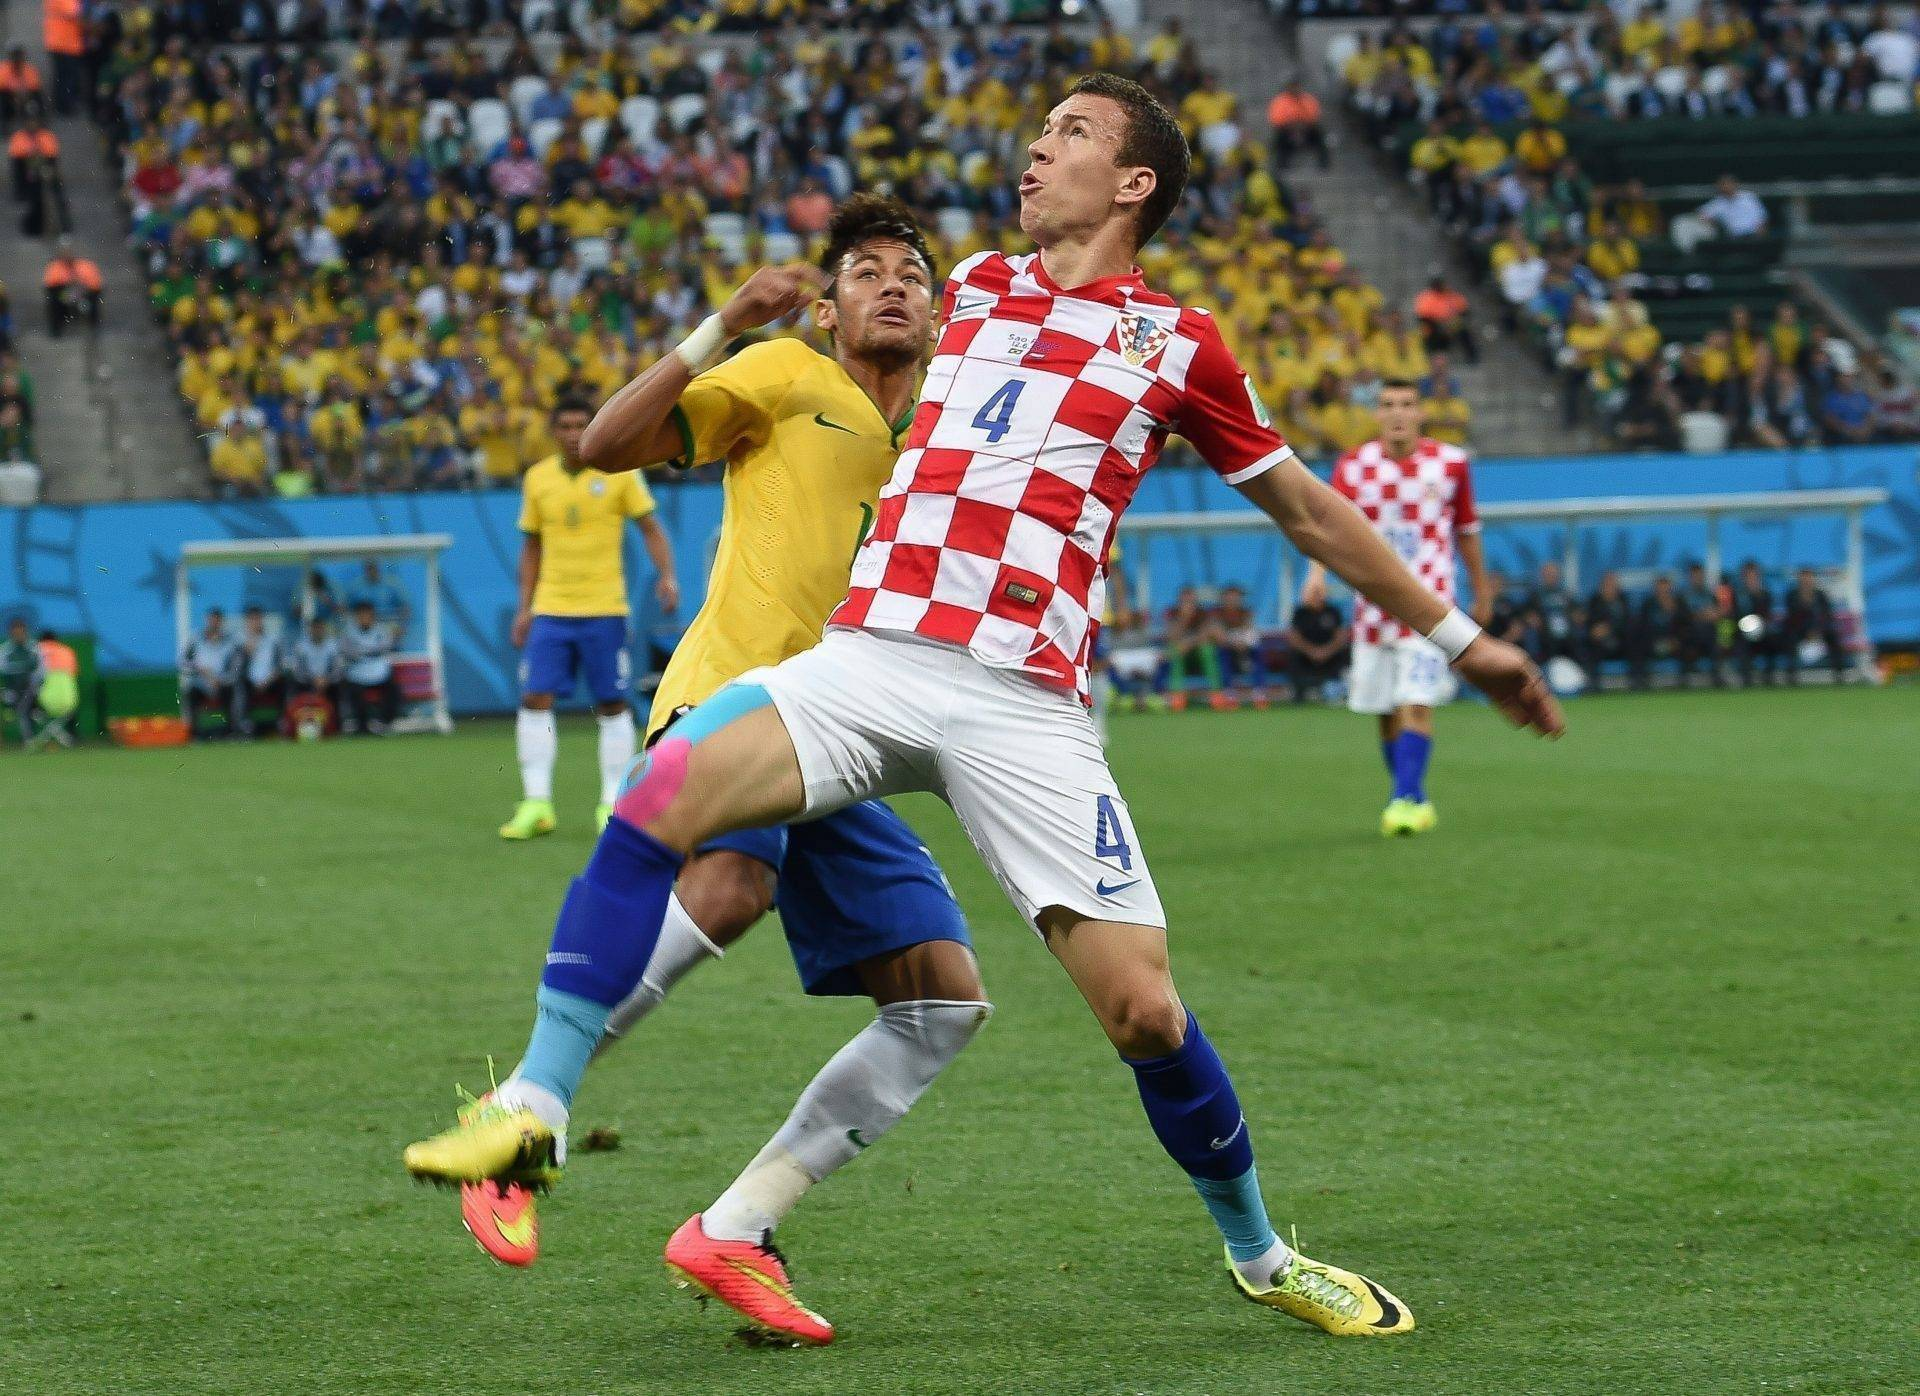 Brazil_and_Croatia_match_at_the_FIFA_World_Cup_2014-06-12_(09)